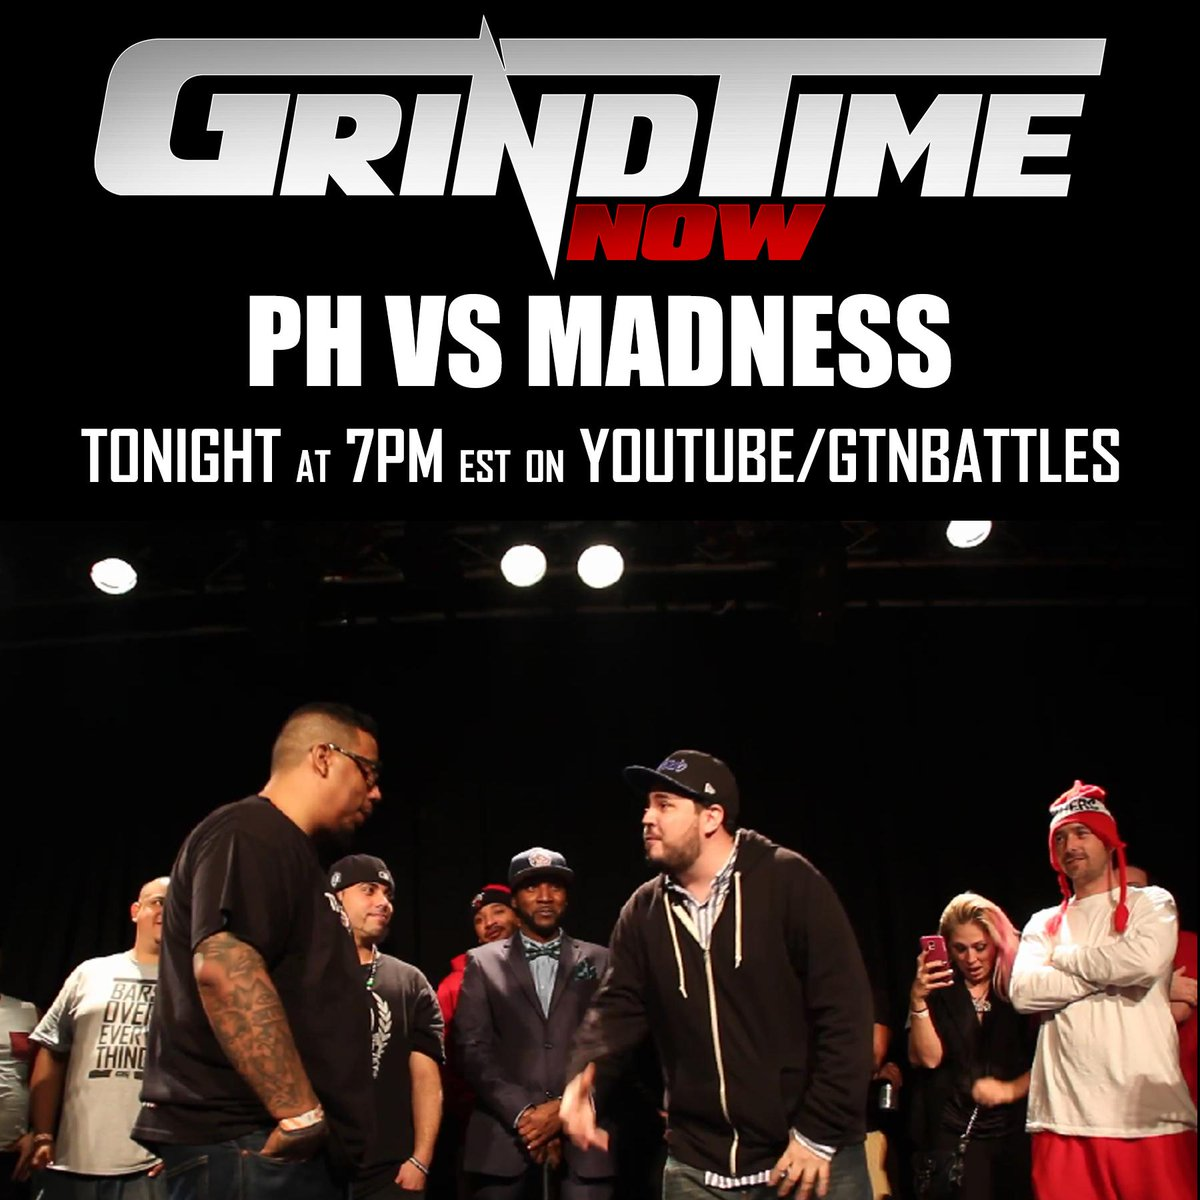 Tonight at 7pm est, MADNESS VS PH for the Championship! http://t.co/epwqnVKhQQ #GrindTimeNow #GTNbattles http://t.co/L2ebRhfwAM